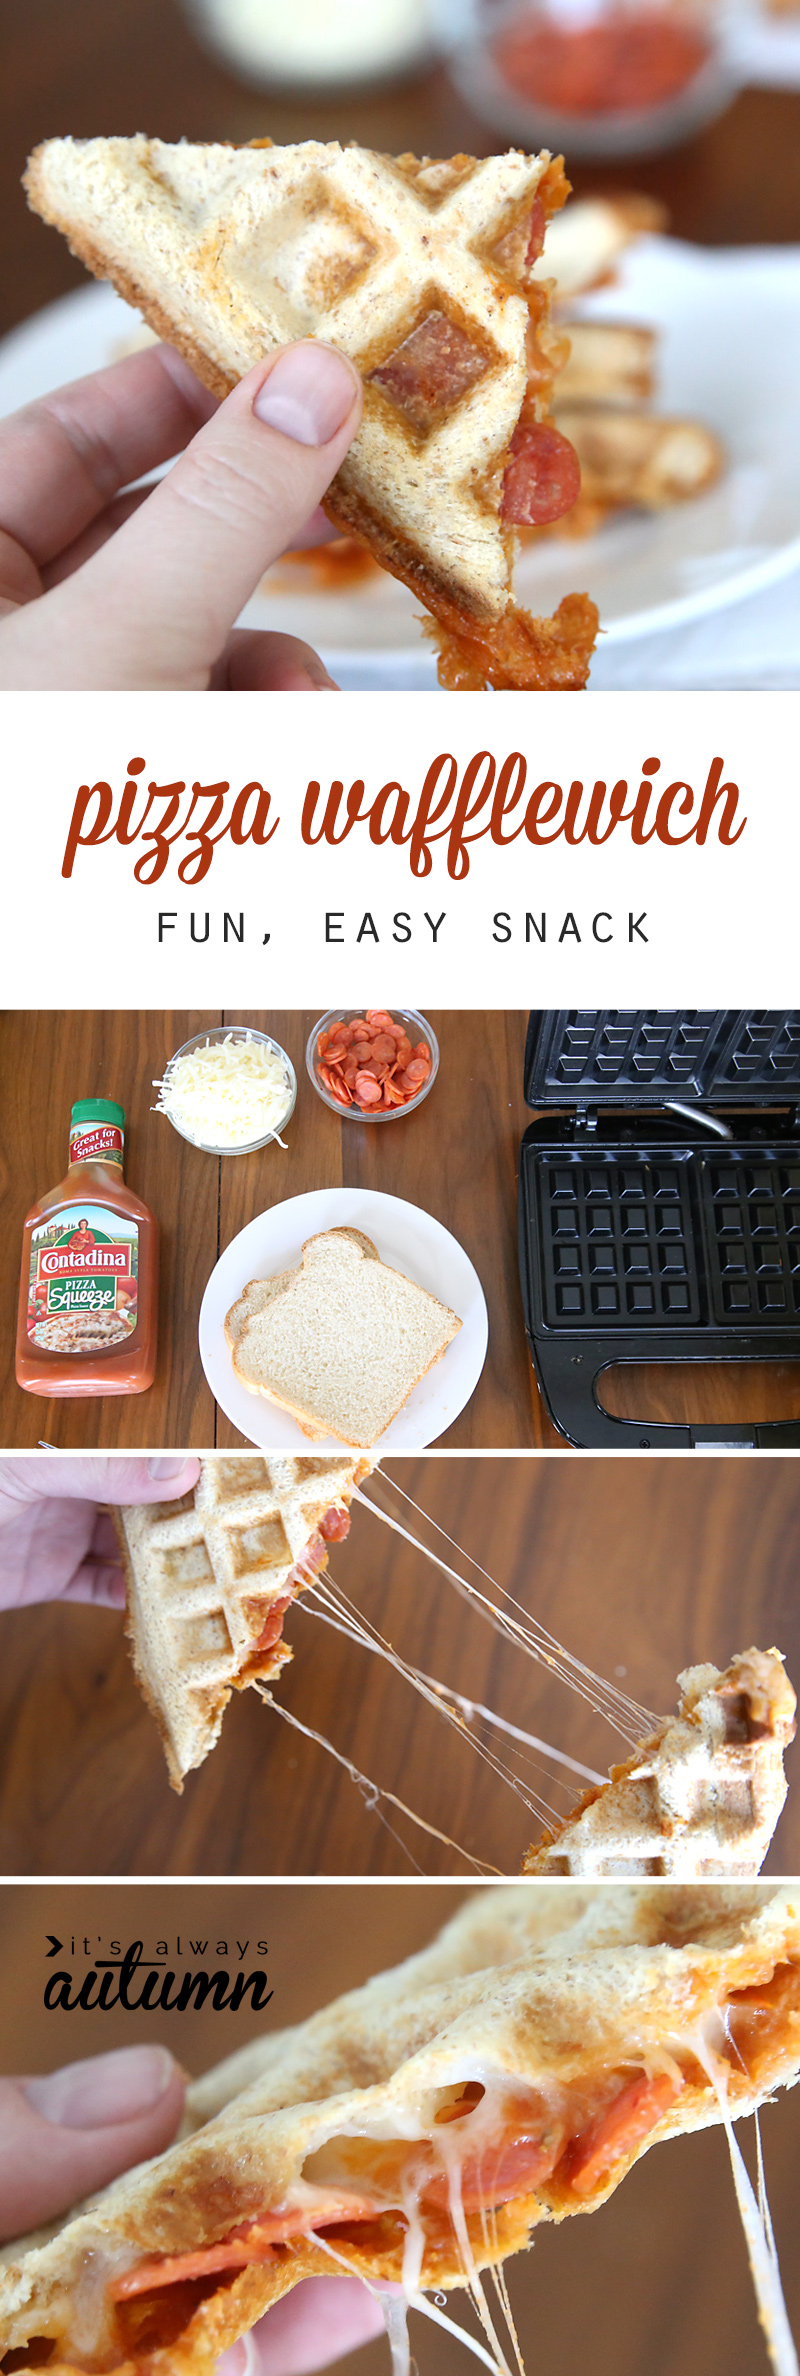 pizza wafflewich, made with bread and pizza ingredients in a waffle iron